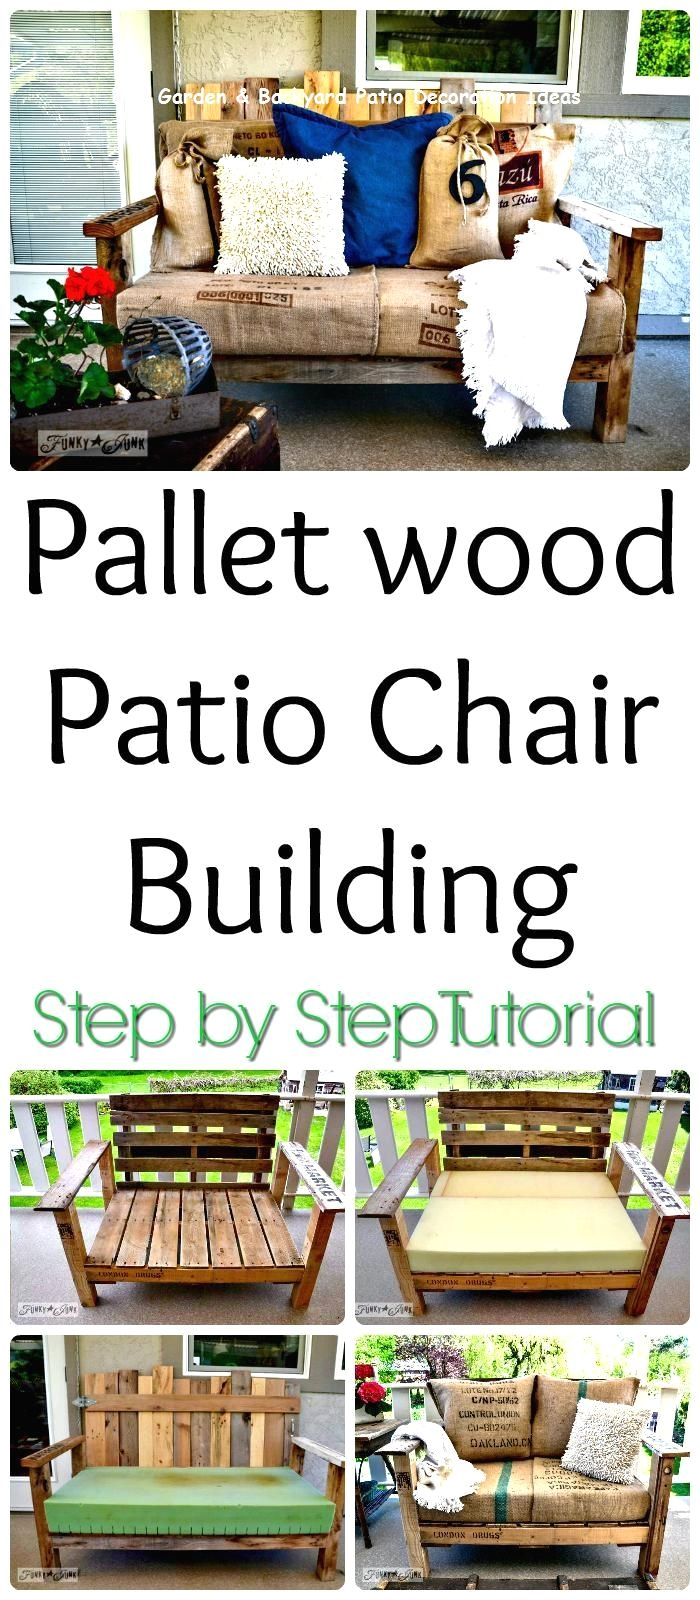 13 Awesome and Cheap Patio Furniture ideas 2 | DIY Patio Ideas for Backyard  & Garden | Pinterest | Bricolaje, Muebles reciclados and Muebles - 13 Awesome And Cheap Patio Furniture Ideas 2 DIY Patio Ideas For